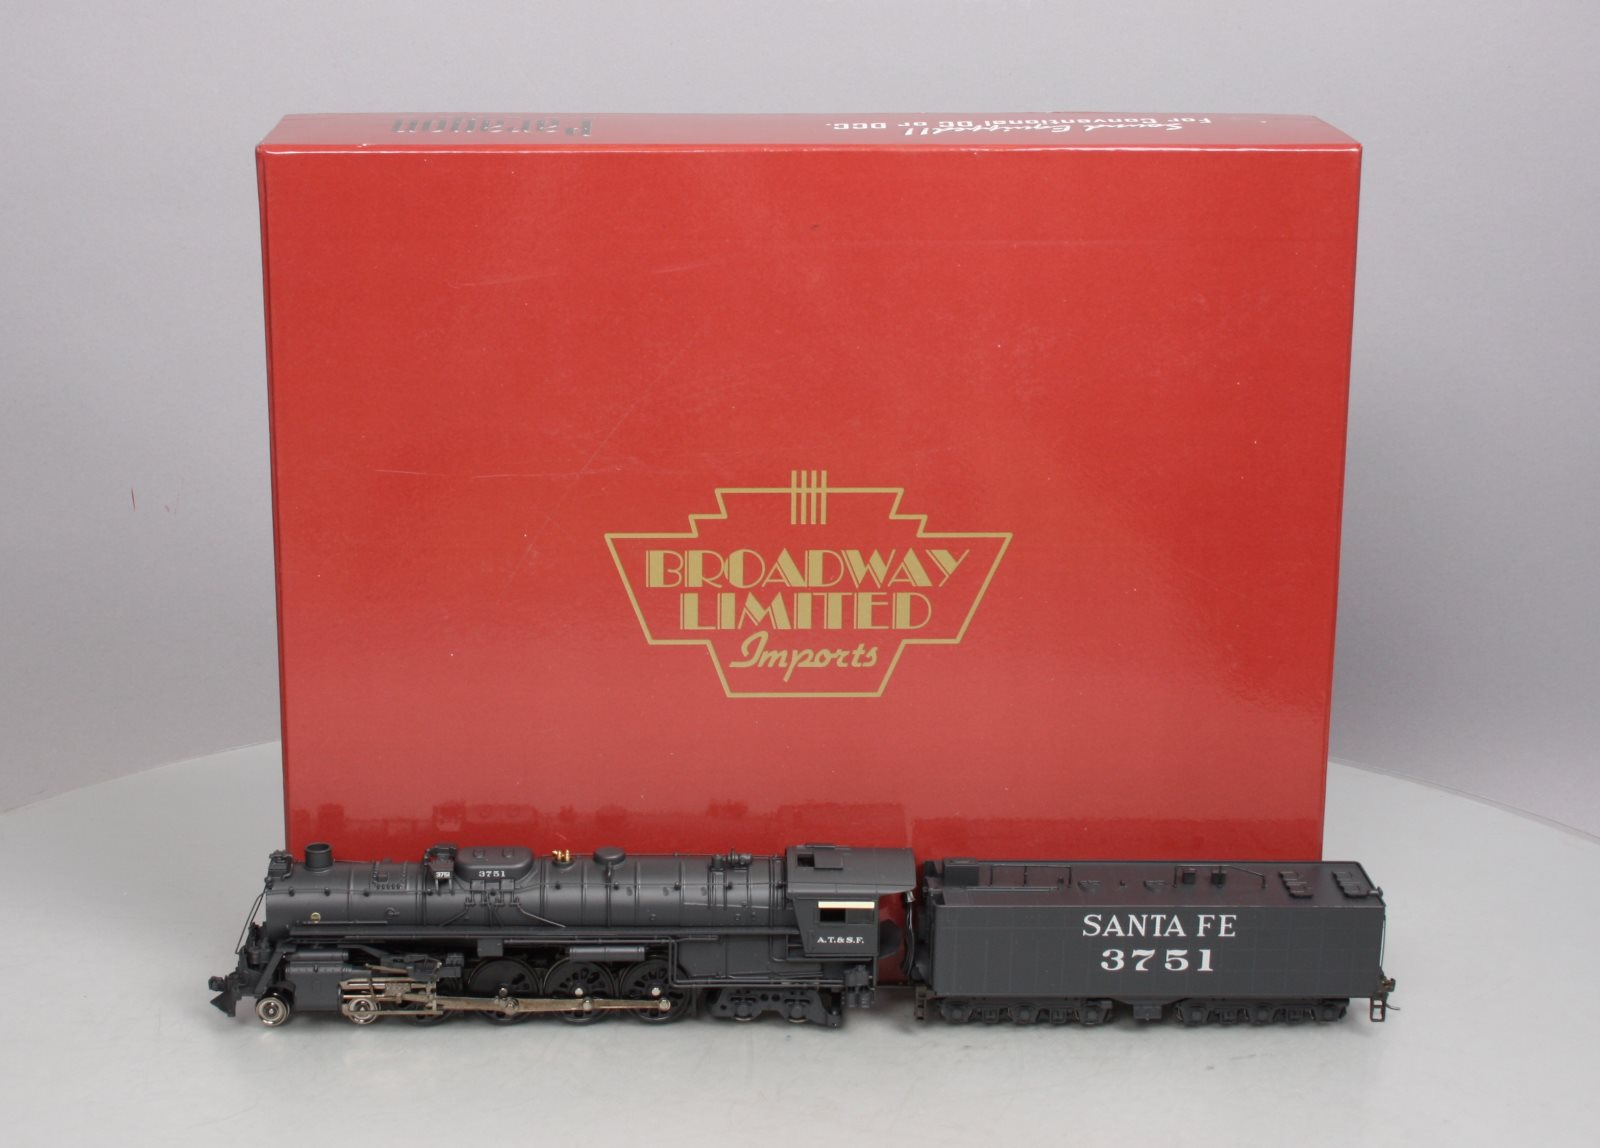 Broadway Limited 045 HO Scale ATSF 4-8-4 Steam Locomotive  3751 w/QSI Sound LN